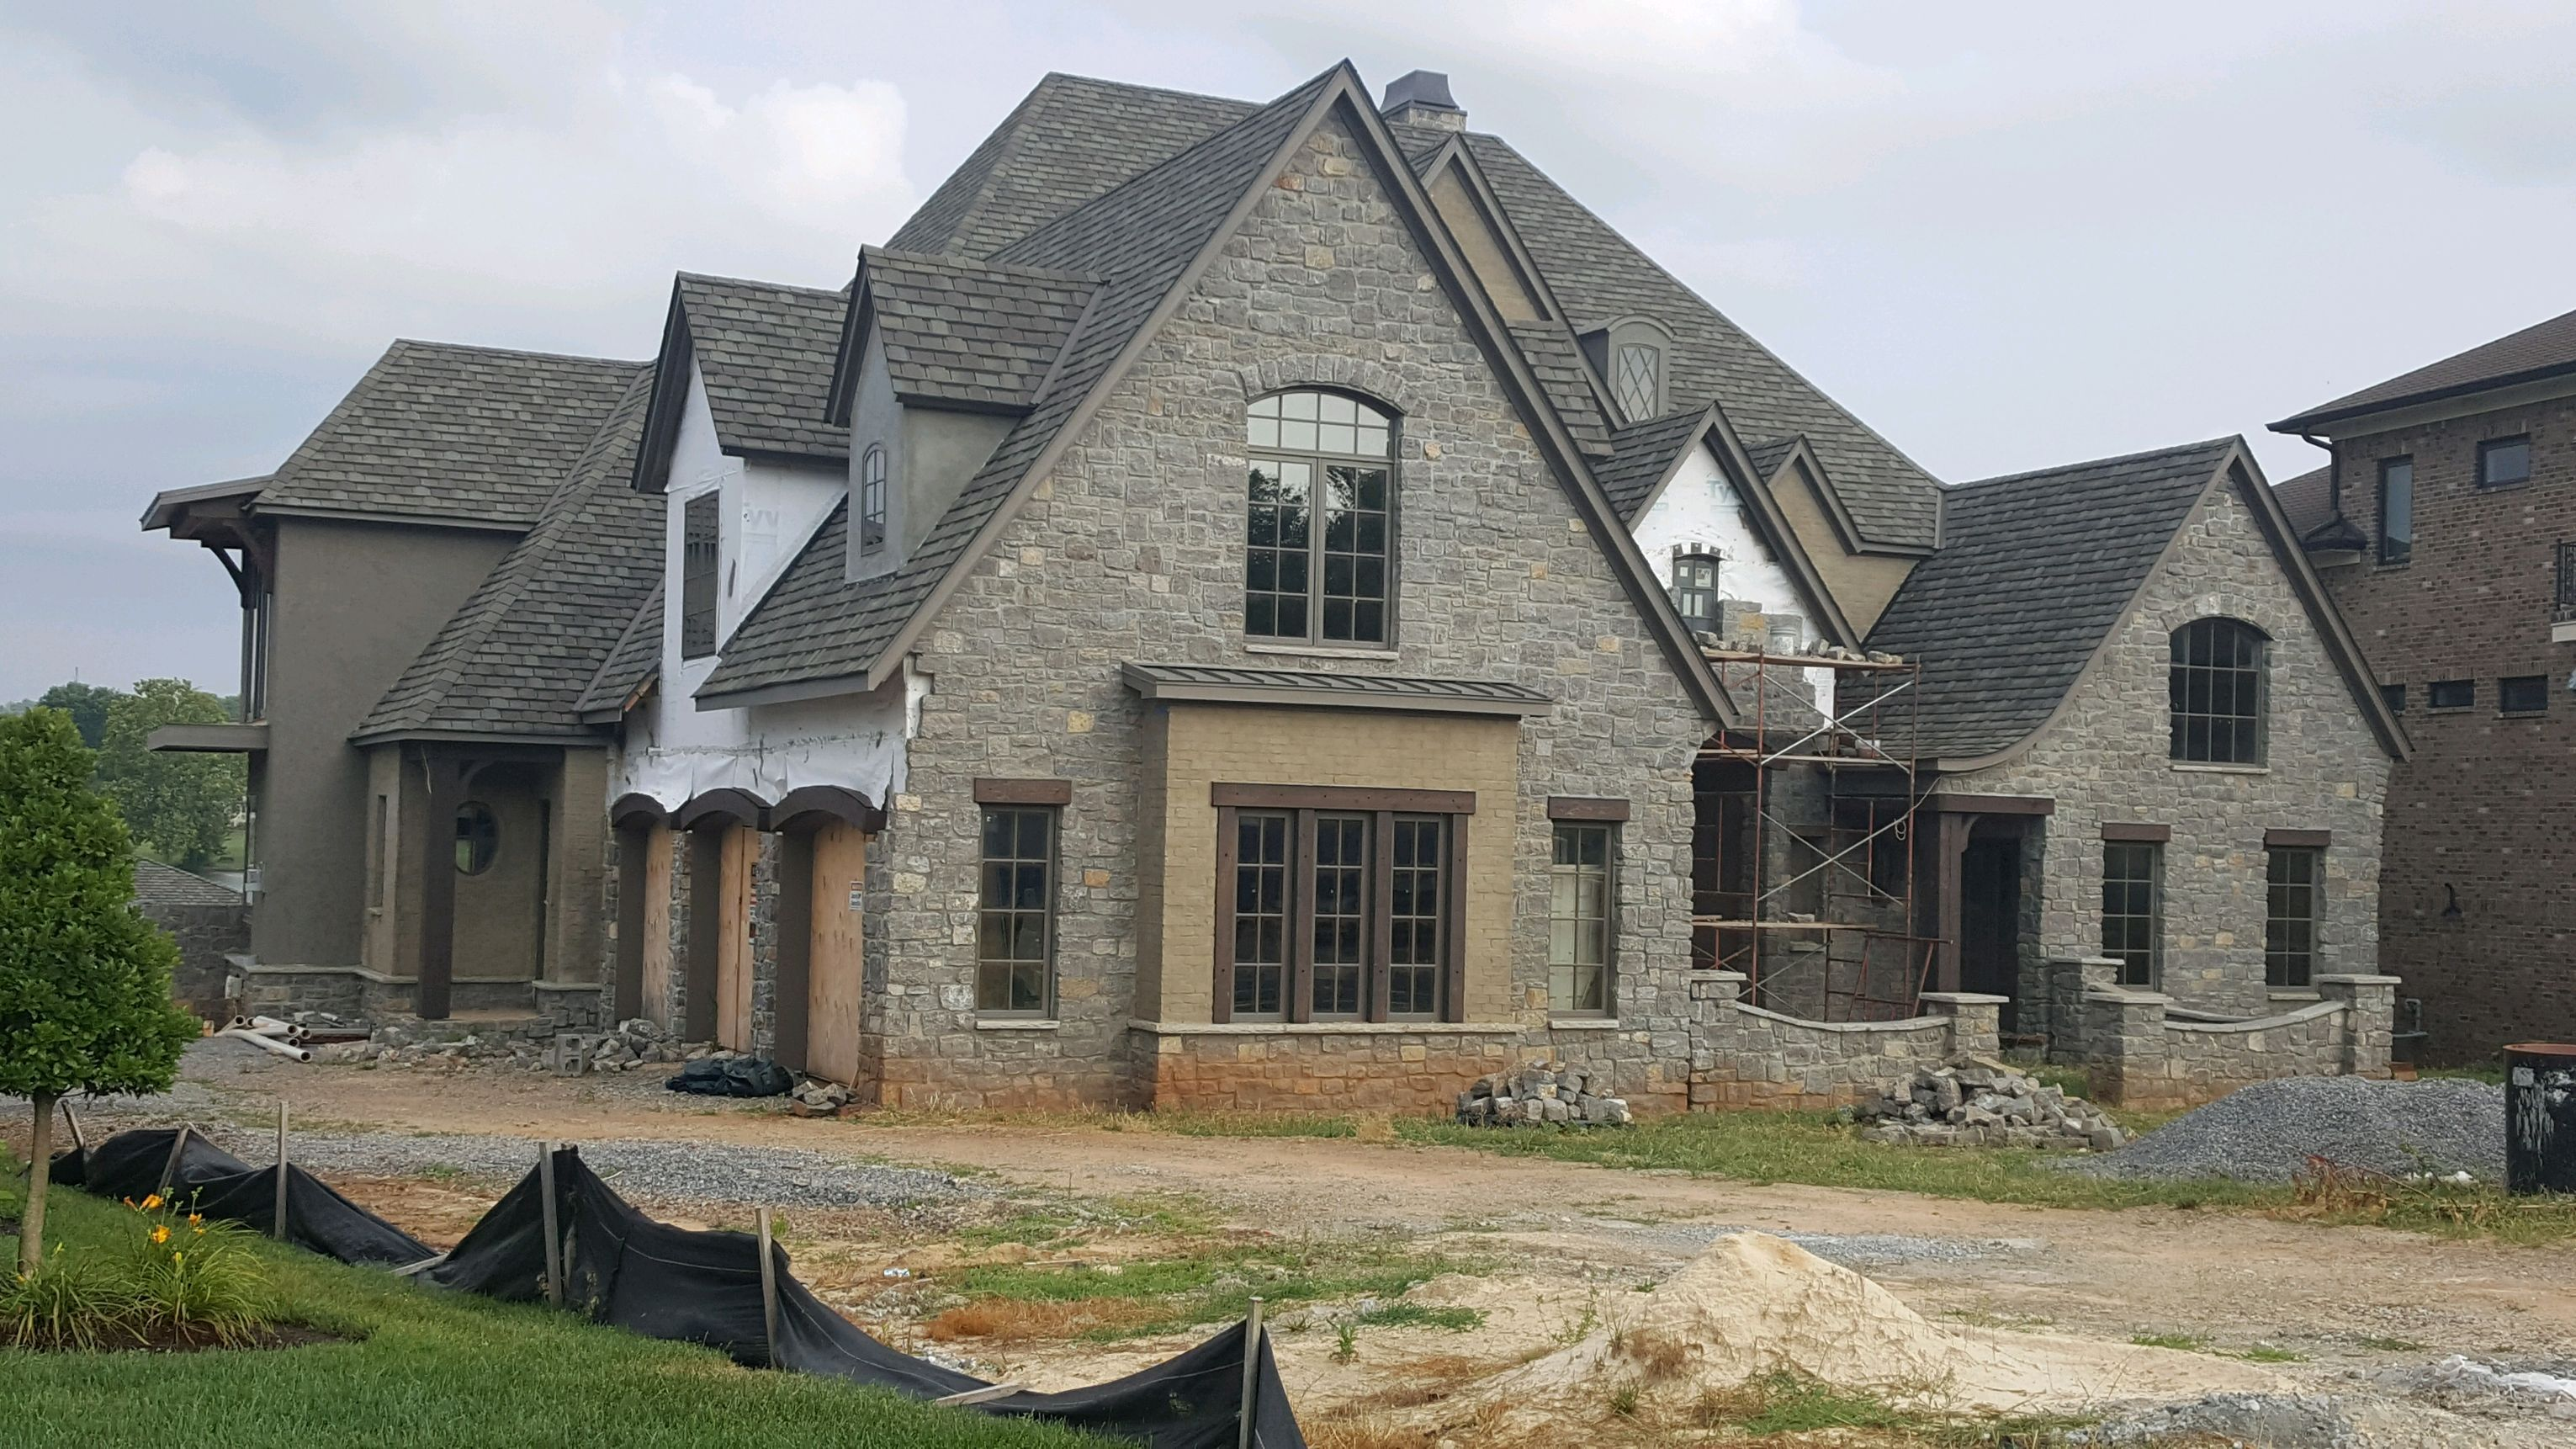 Residential Roof Replacement Knoxville Tn Burell Built Exteriors Roofing Company Llc In 2020 Roofing Contractors Roofing Residential Roofing